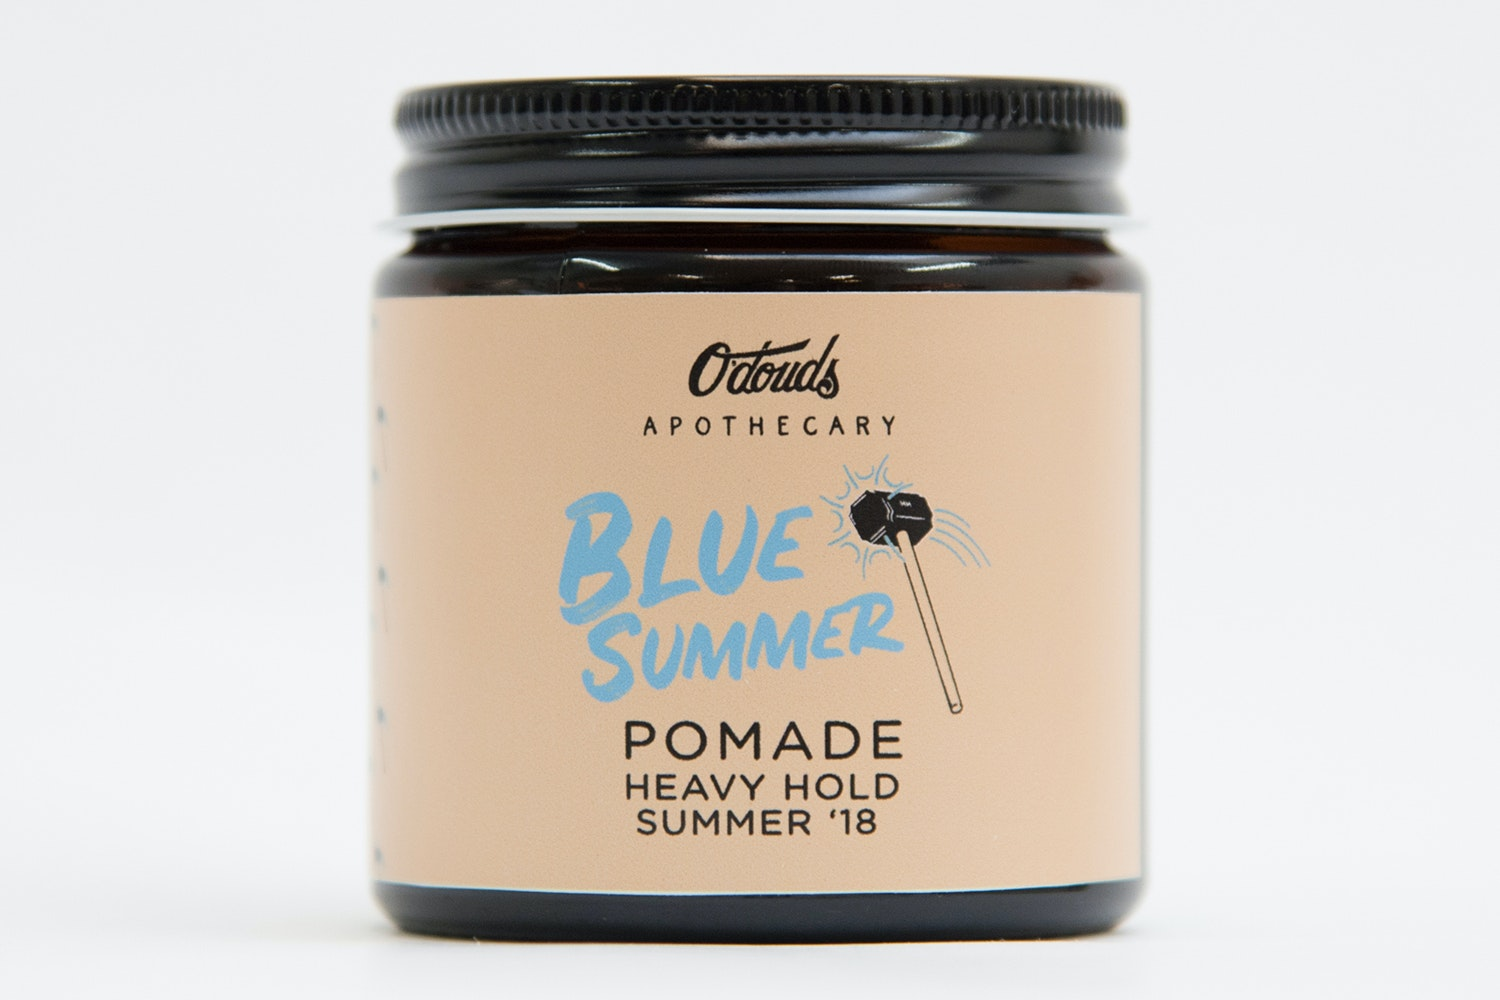 Blue Summer heavy-hold pomade